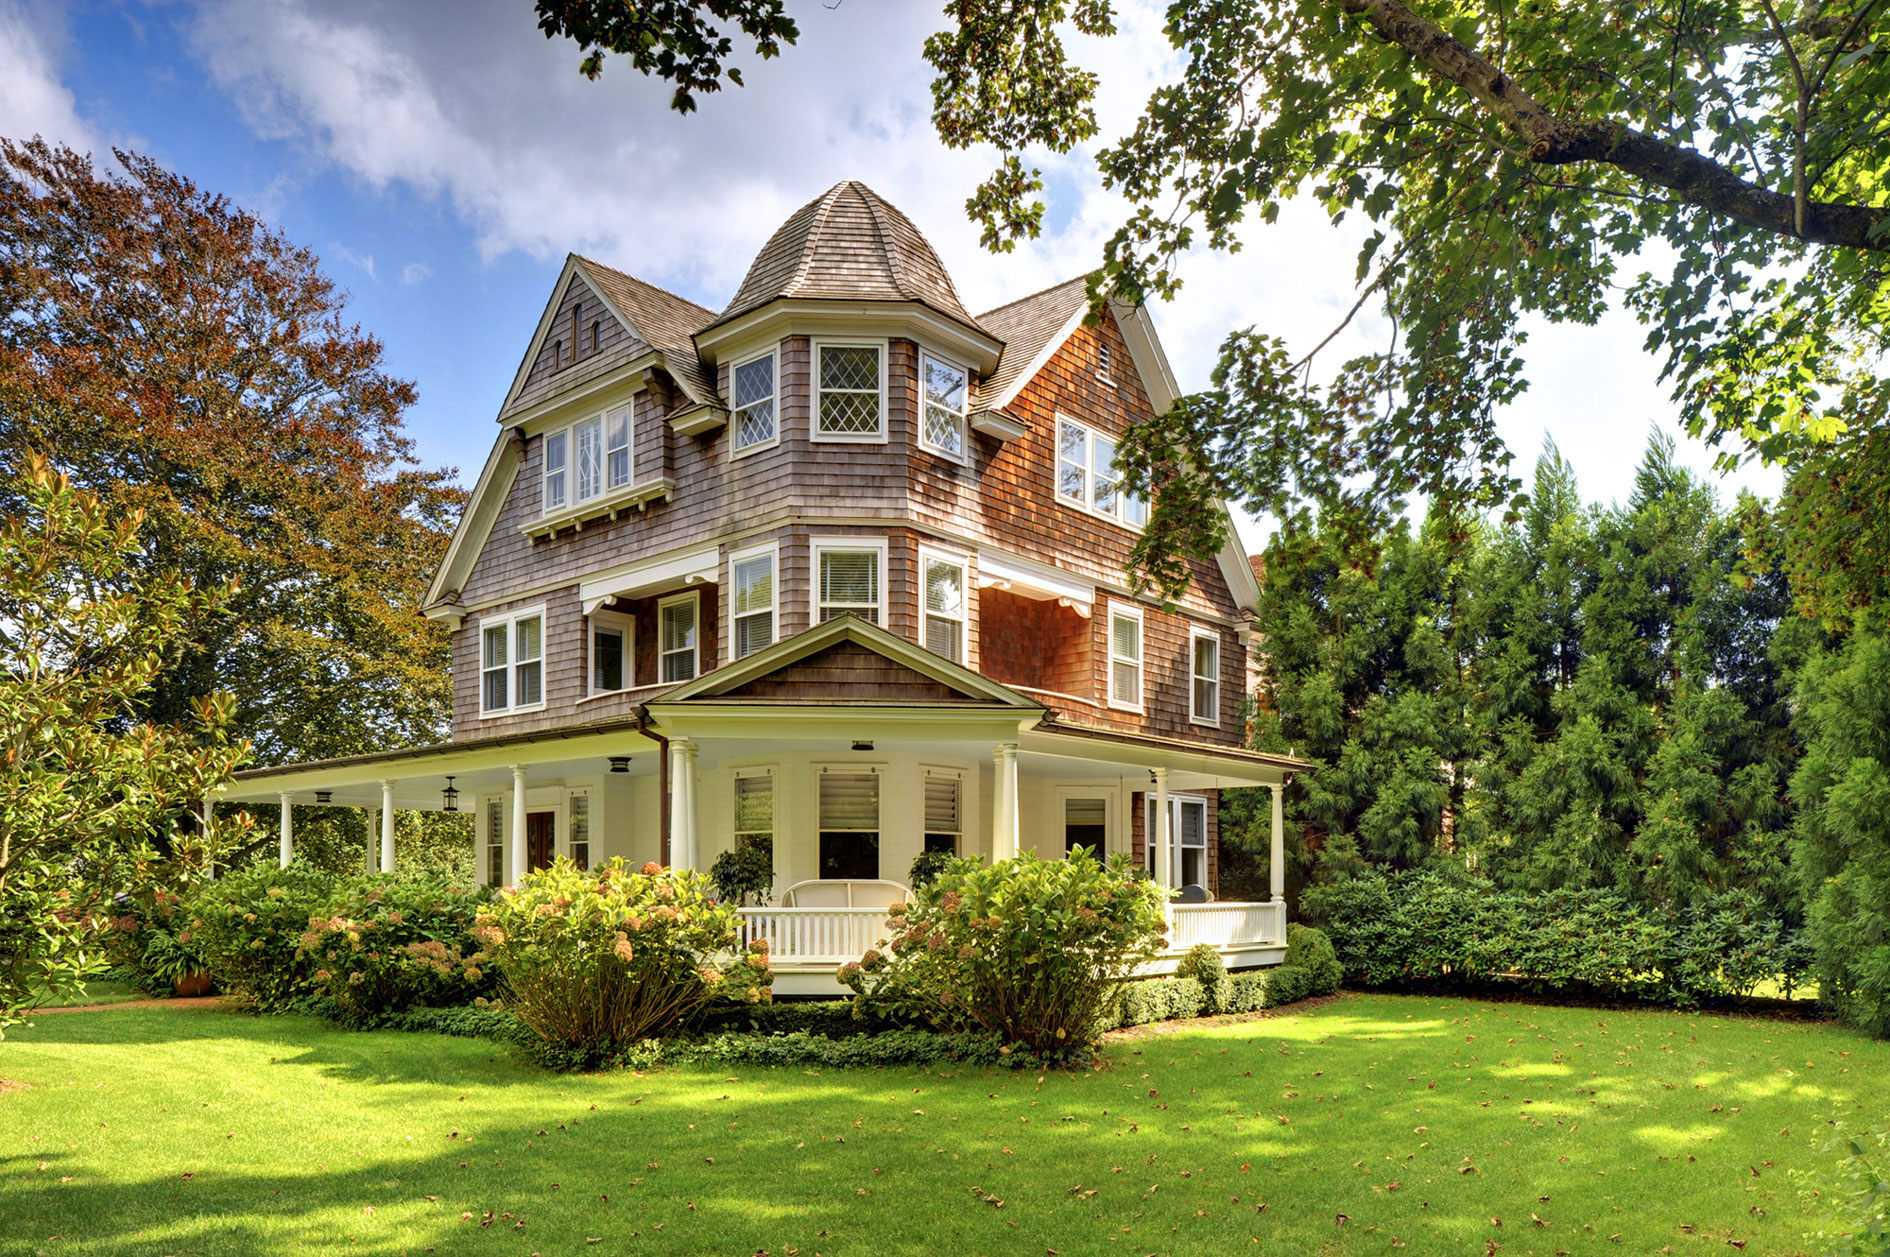 This home's striking architectural features are a testament to the late Queen Anne Revival style of the Northeast. Its shingle façade, asymmetrical roofline, and wraparound porch are among the classic details.